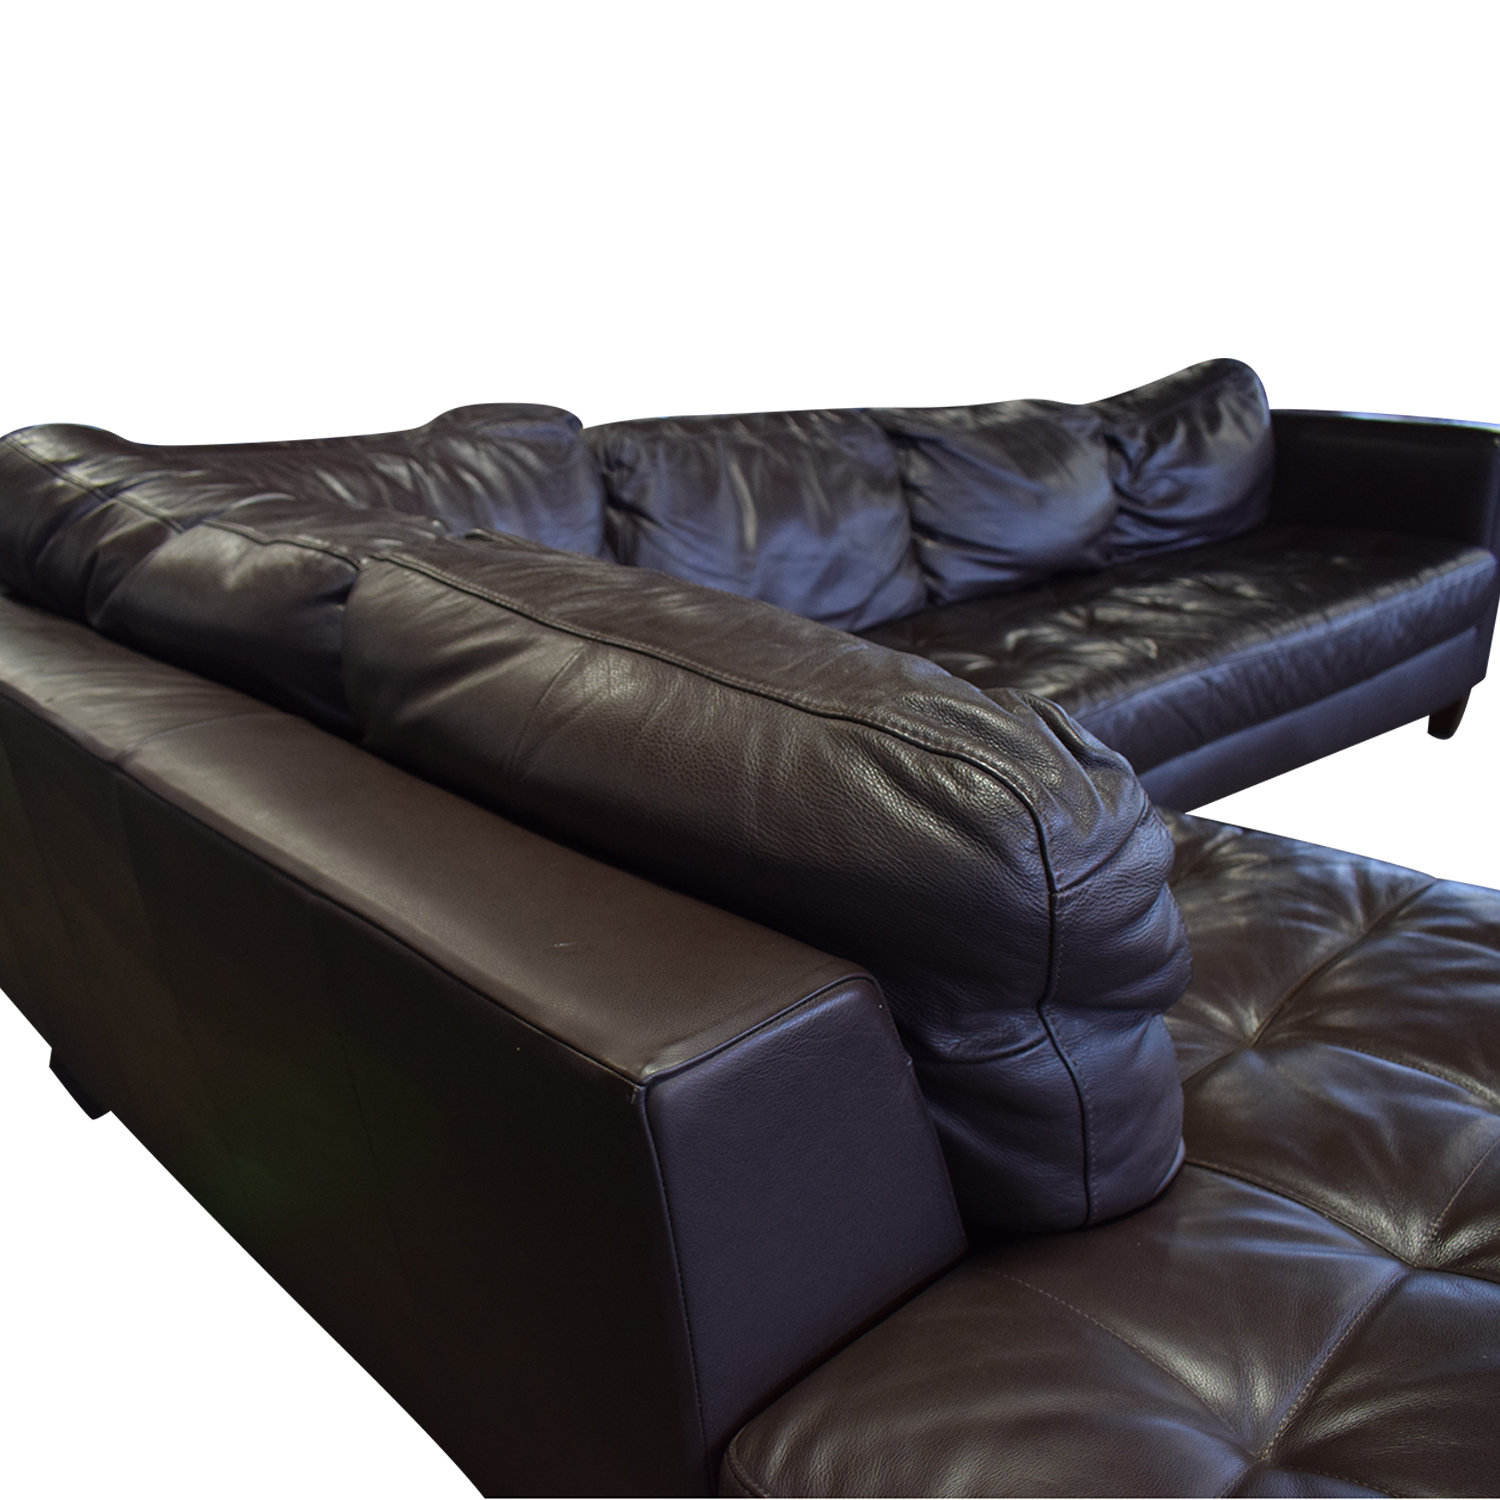 Natuzzi Natuzzi Editions Leather Sectional second hand